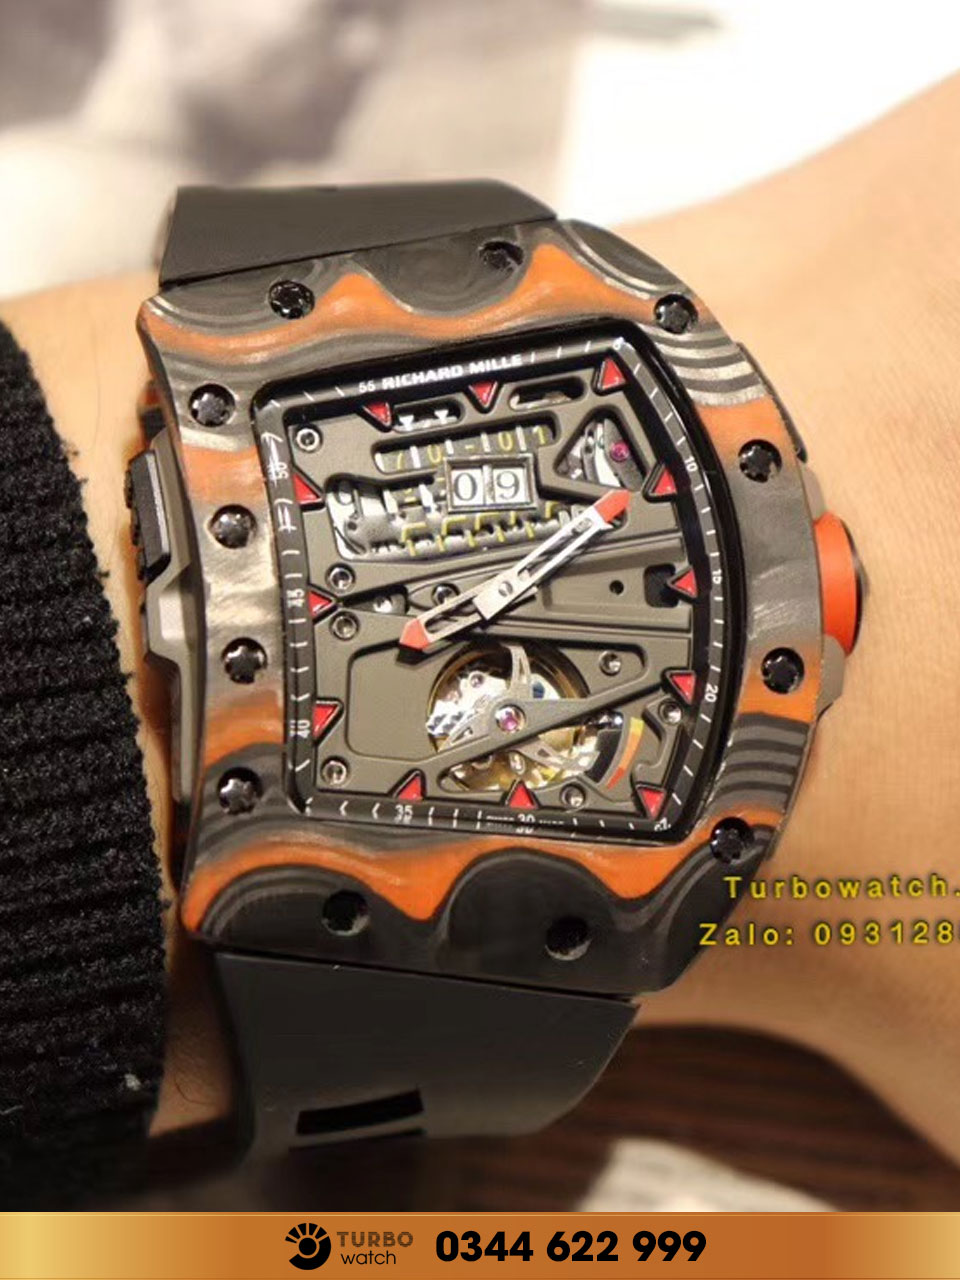 RICHARD MILLE RM070-01L FAKE 1-1 CAO CẤP